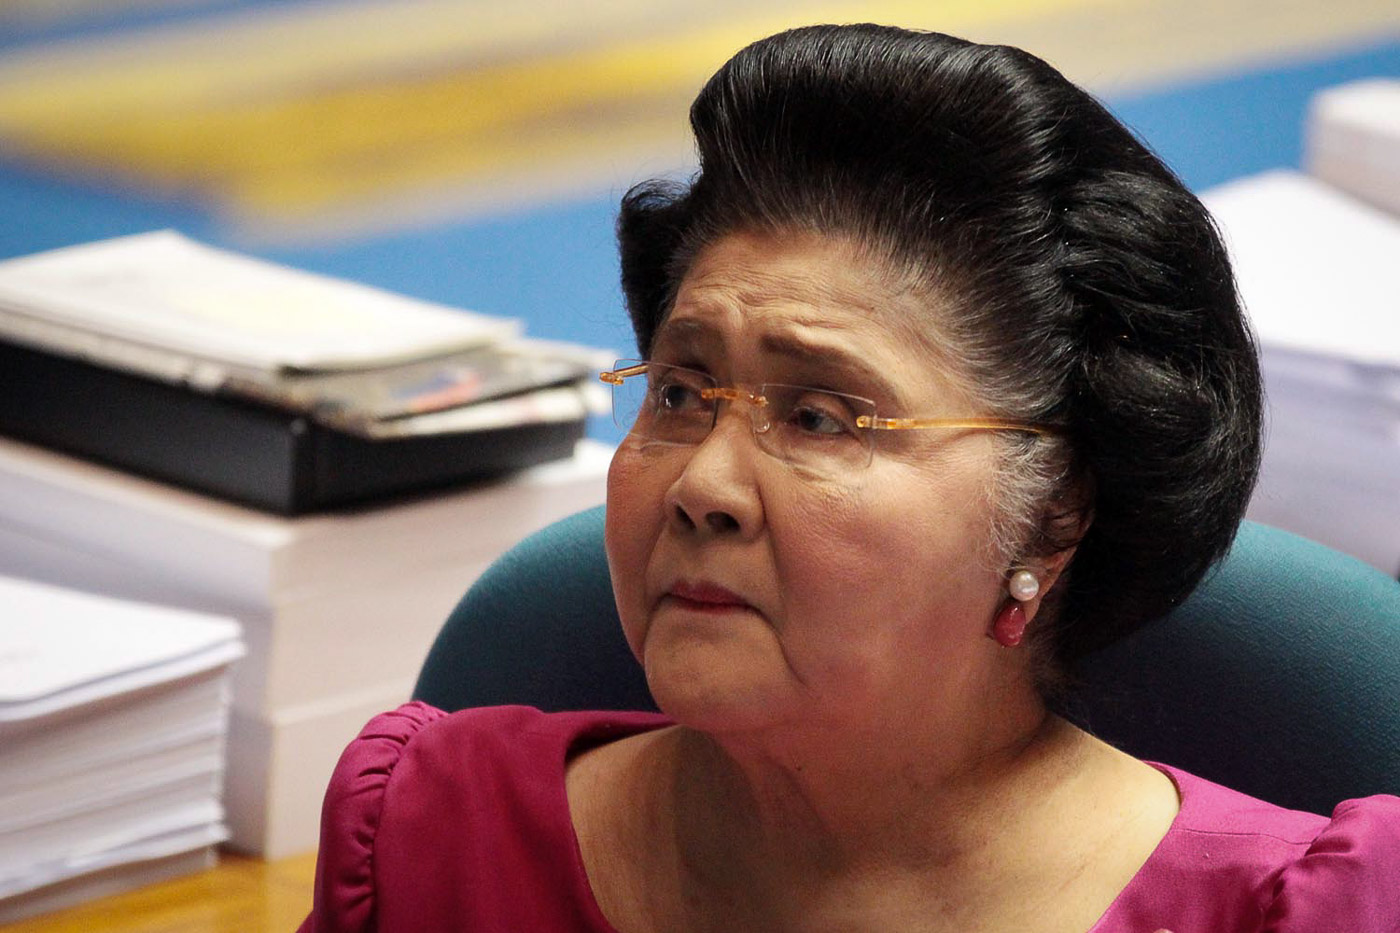 NO LIMITS. Ilocos Norte Rep. Imelda Marcos is running for governor in 2019. File Photo by Darren Langit/Rappler